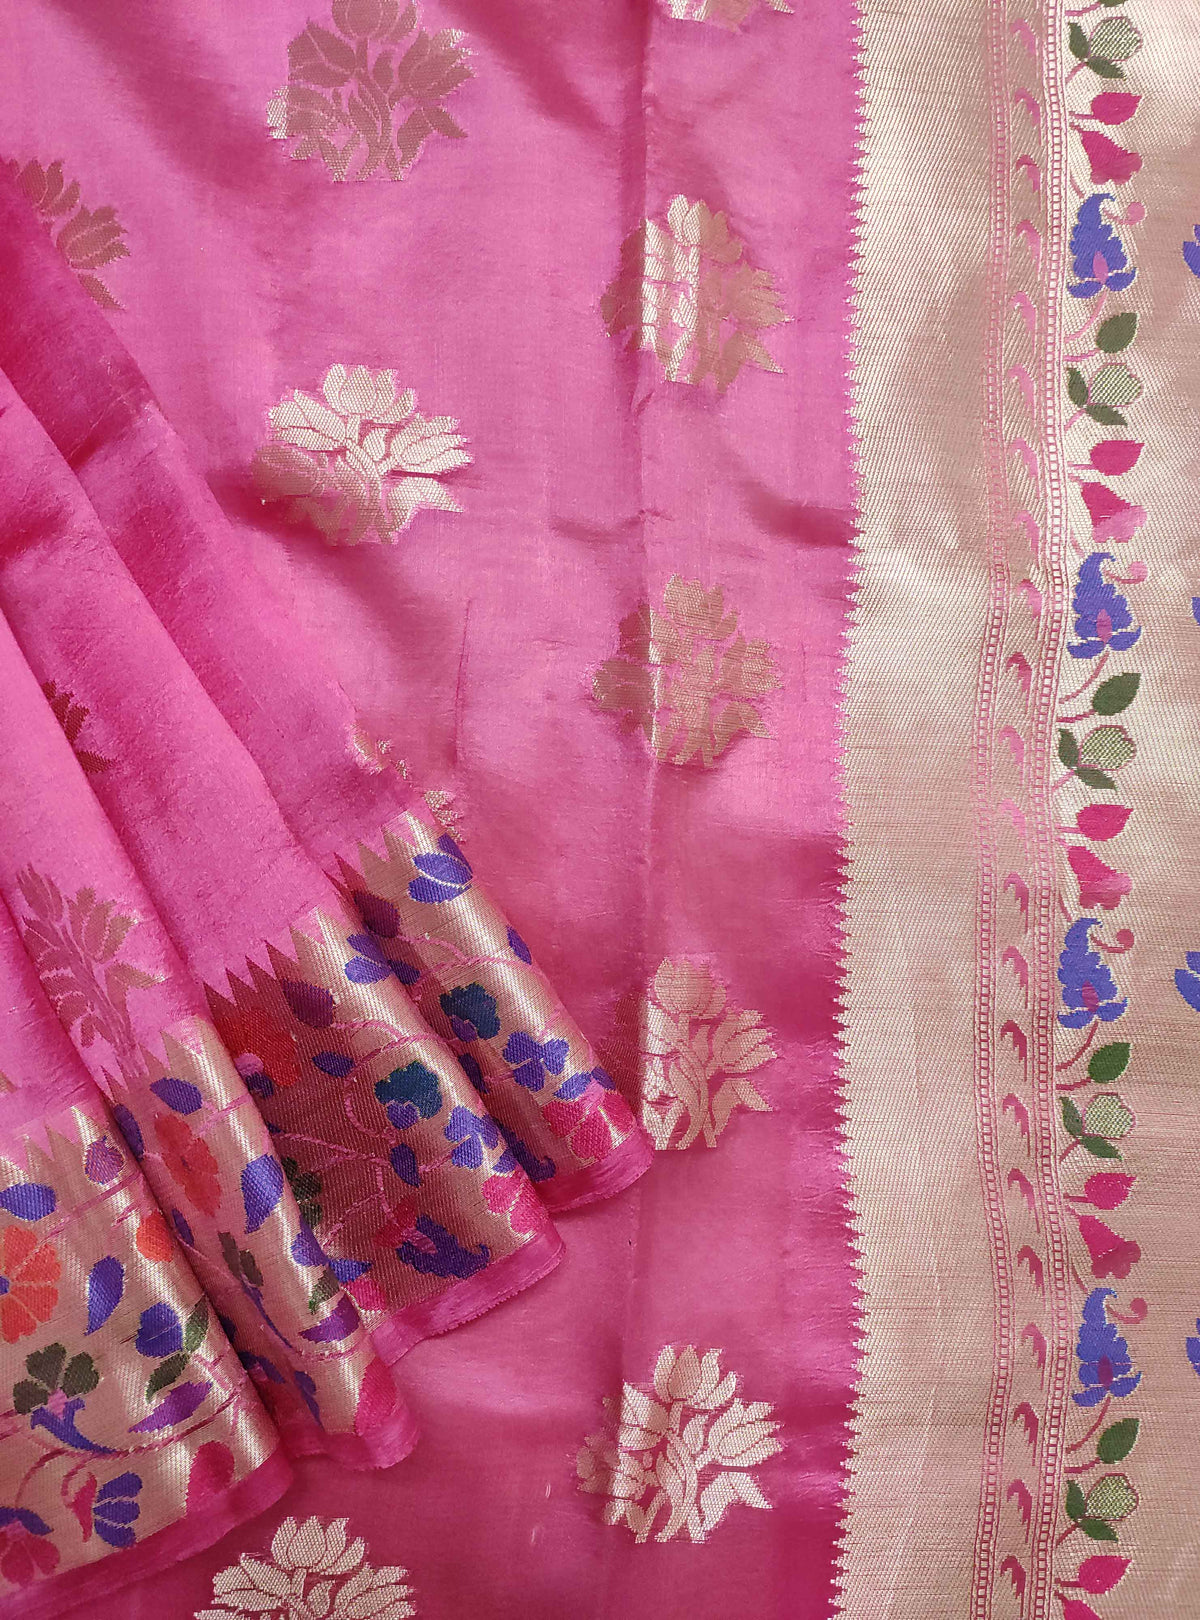 Deep pink dupion silk Banarasi saree with flower boota and meenedar border (2) Close up